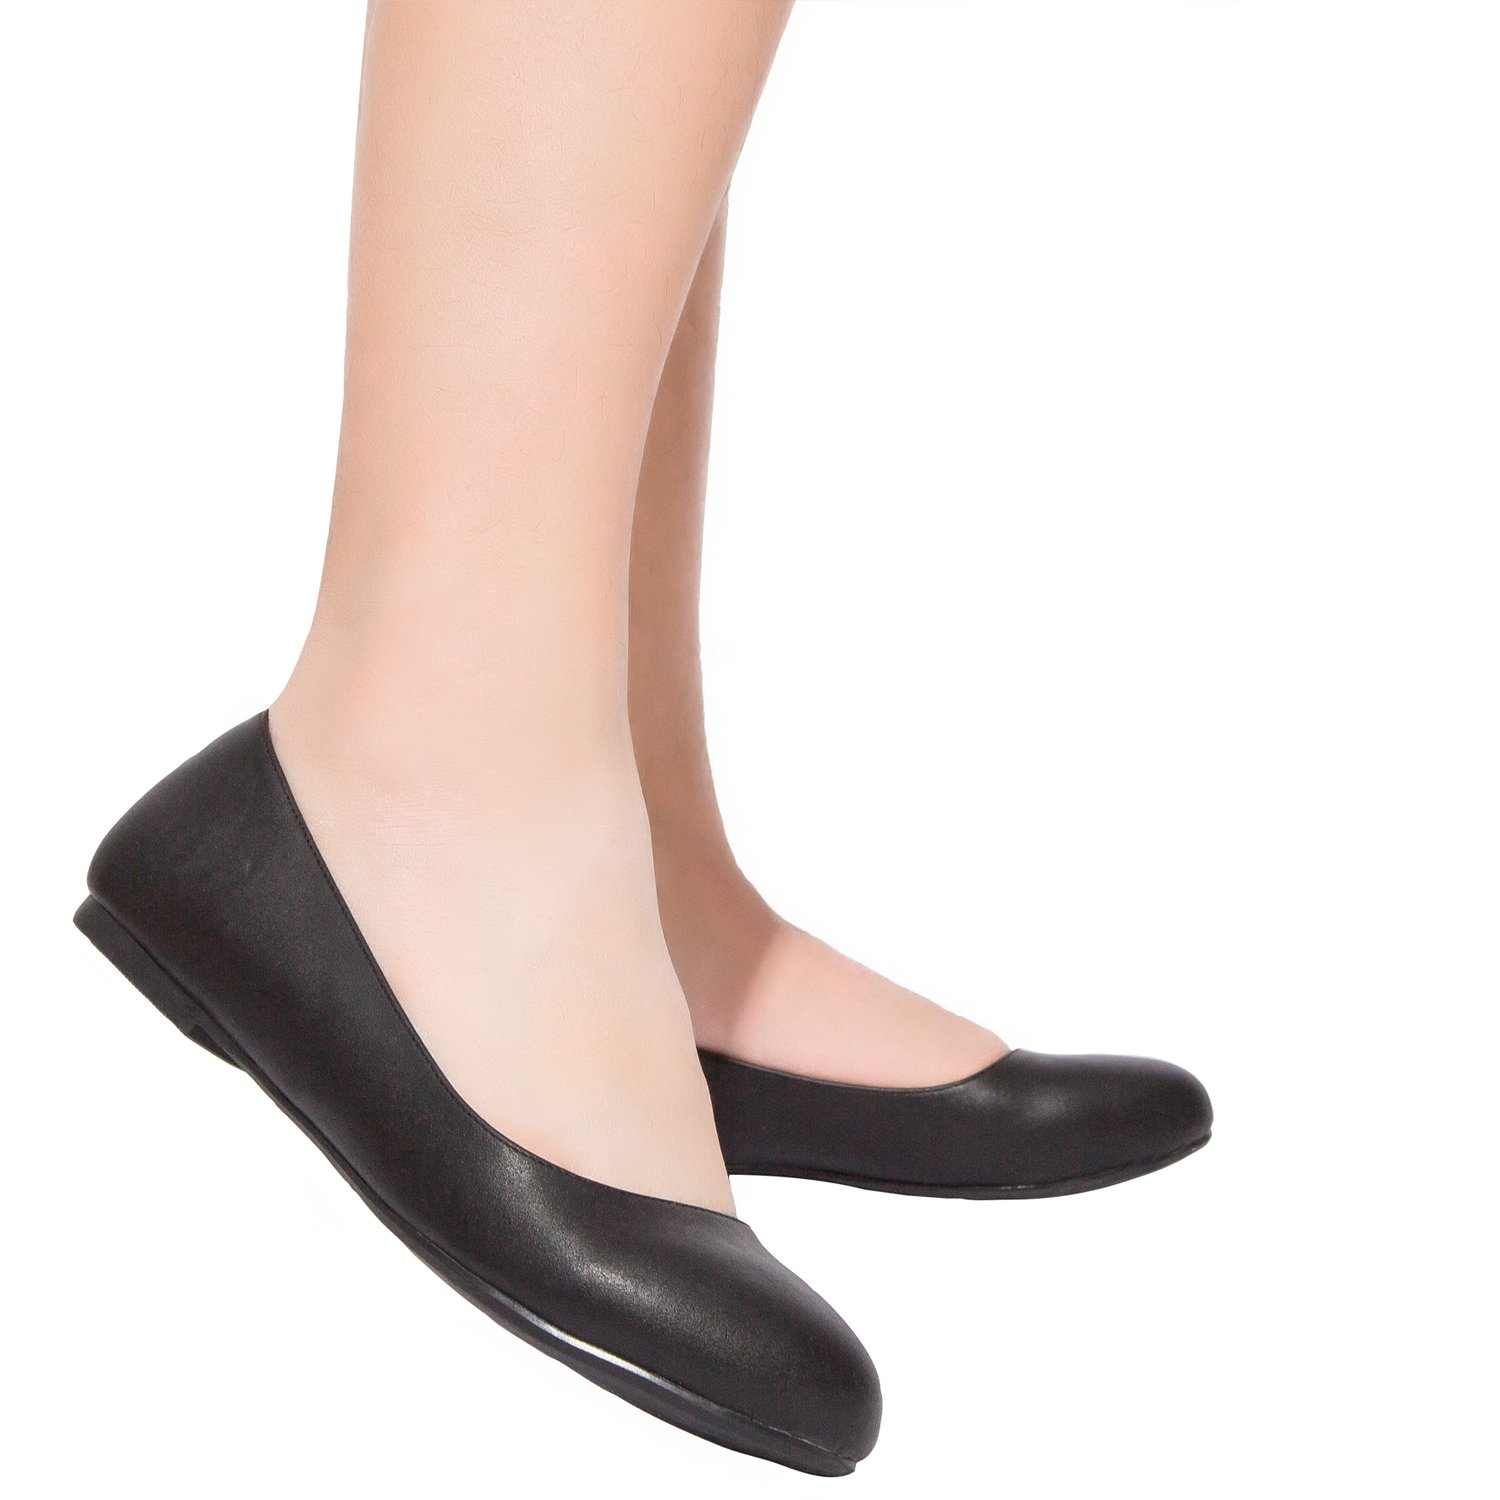 Luoika Women's Wide Width Flat Shoes - Comfortable Slip On Round Toe Ballet Flats. (180110 Black PU,9WW) by Luoika (Image #6)